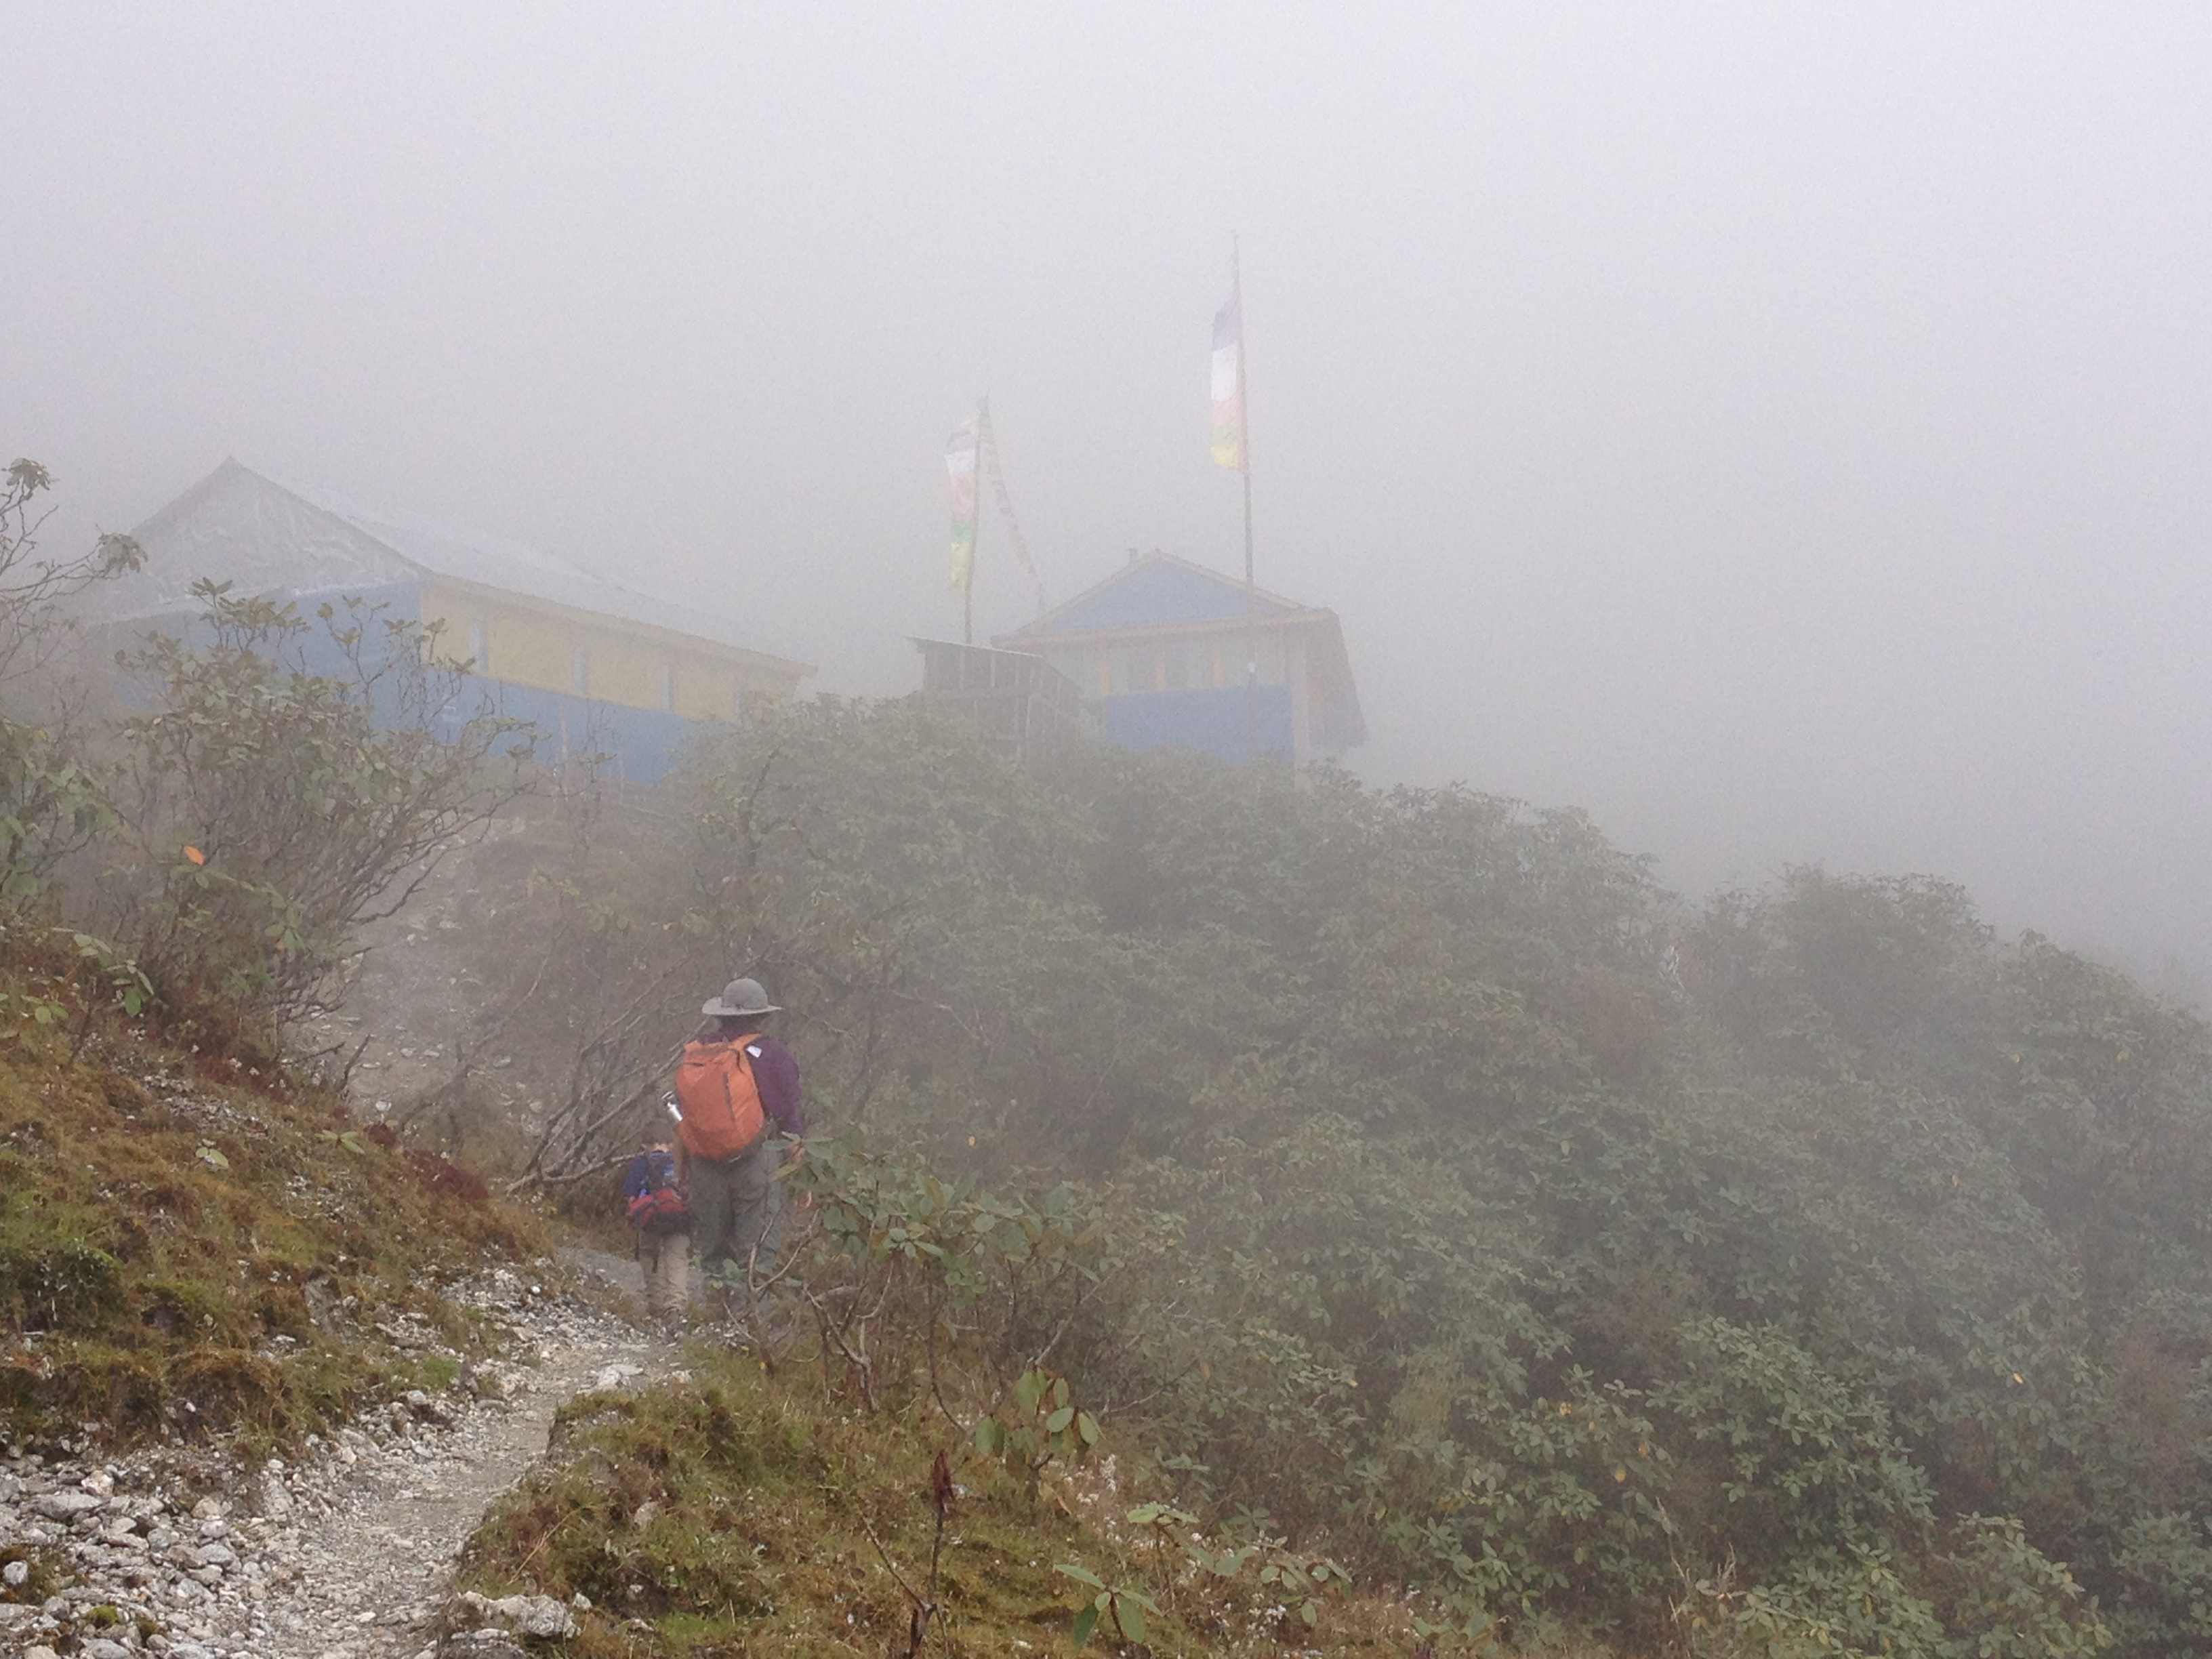 mountain tourism tangledjourneys even before hudhud hit the mountain afternoons were fogged in and had heavy rain